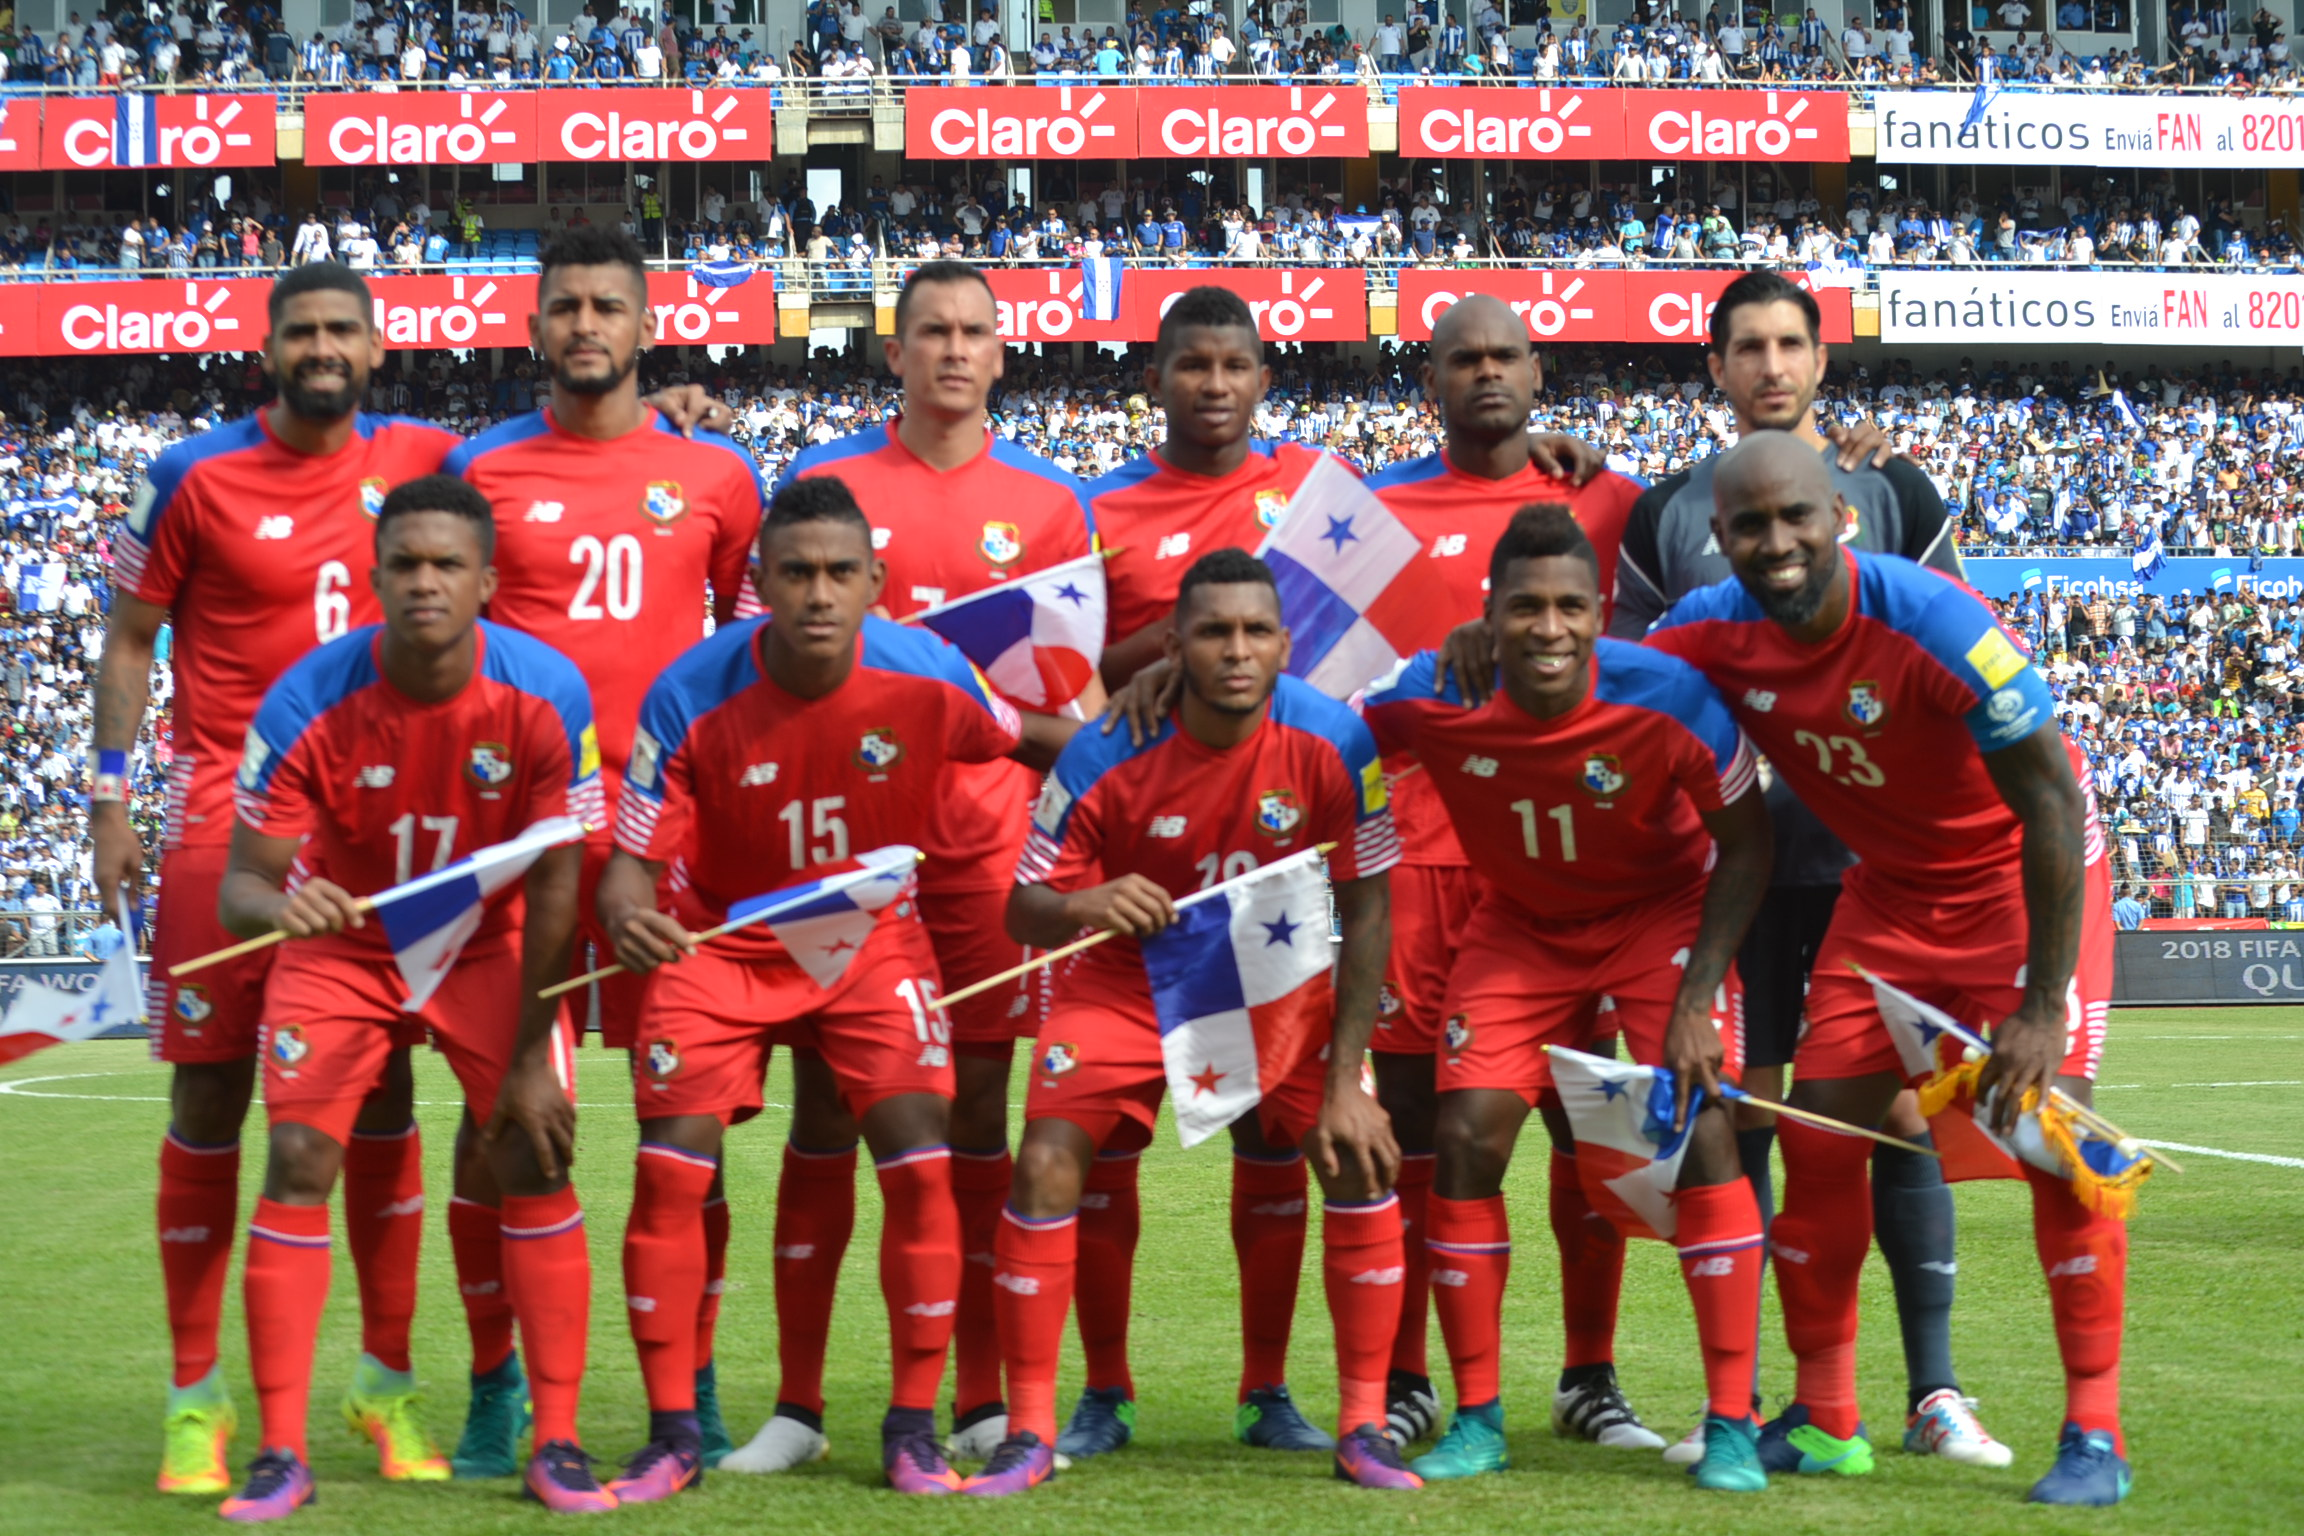 Learn more about the country's soccer team  here.